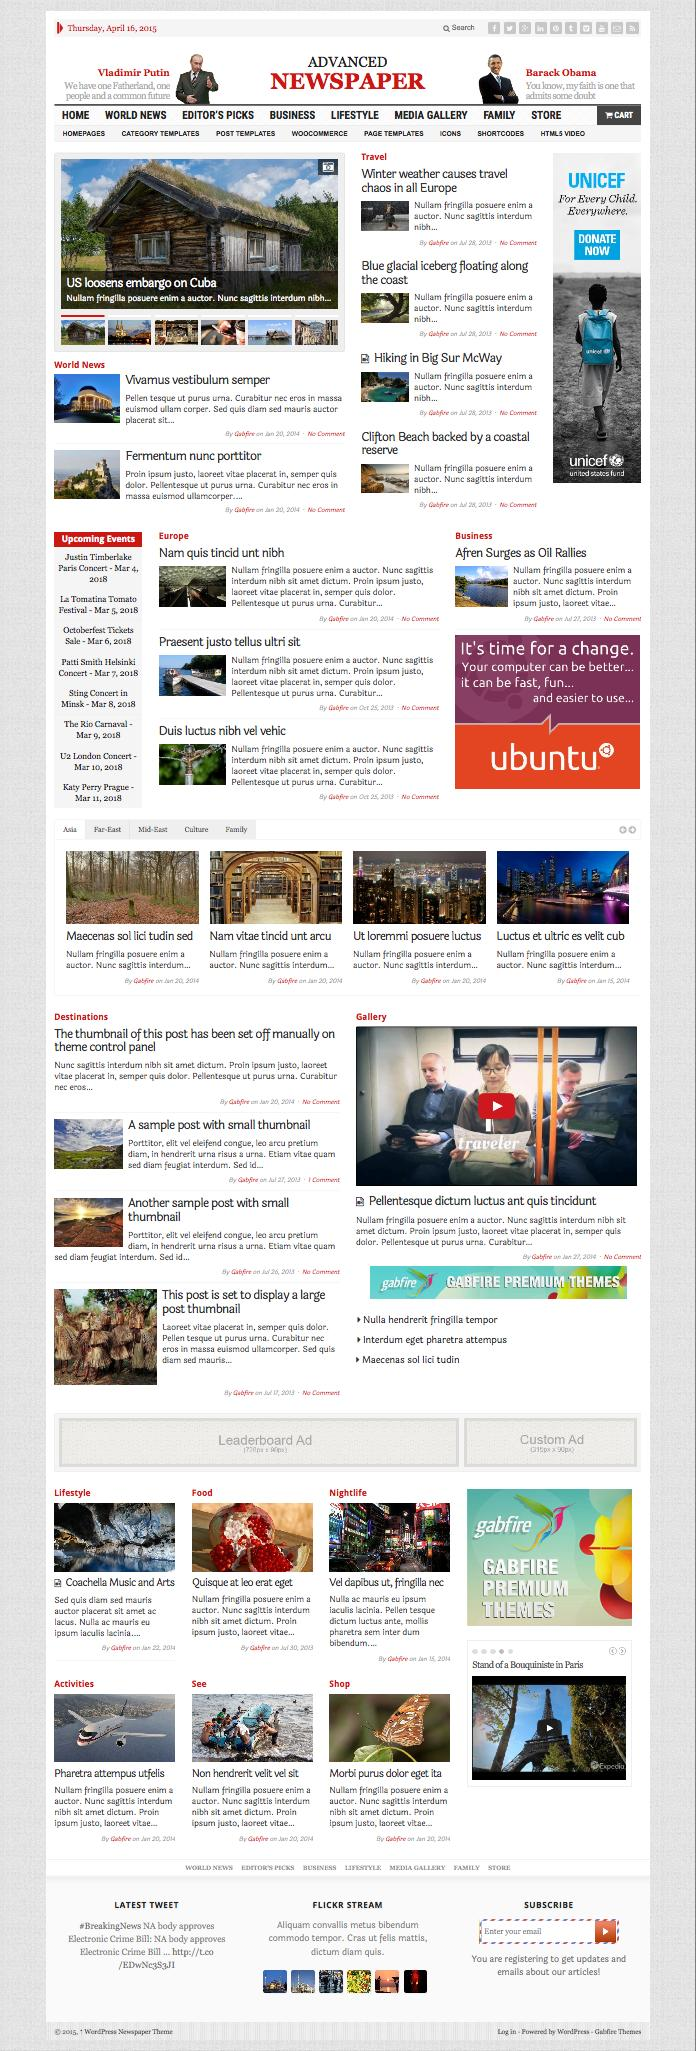 Advanced Newspaper WordPress Theme